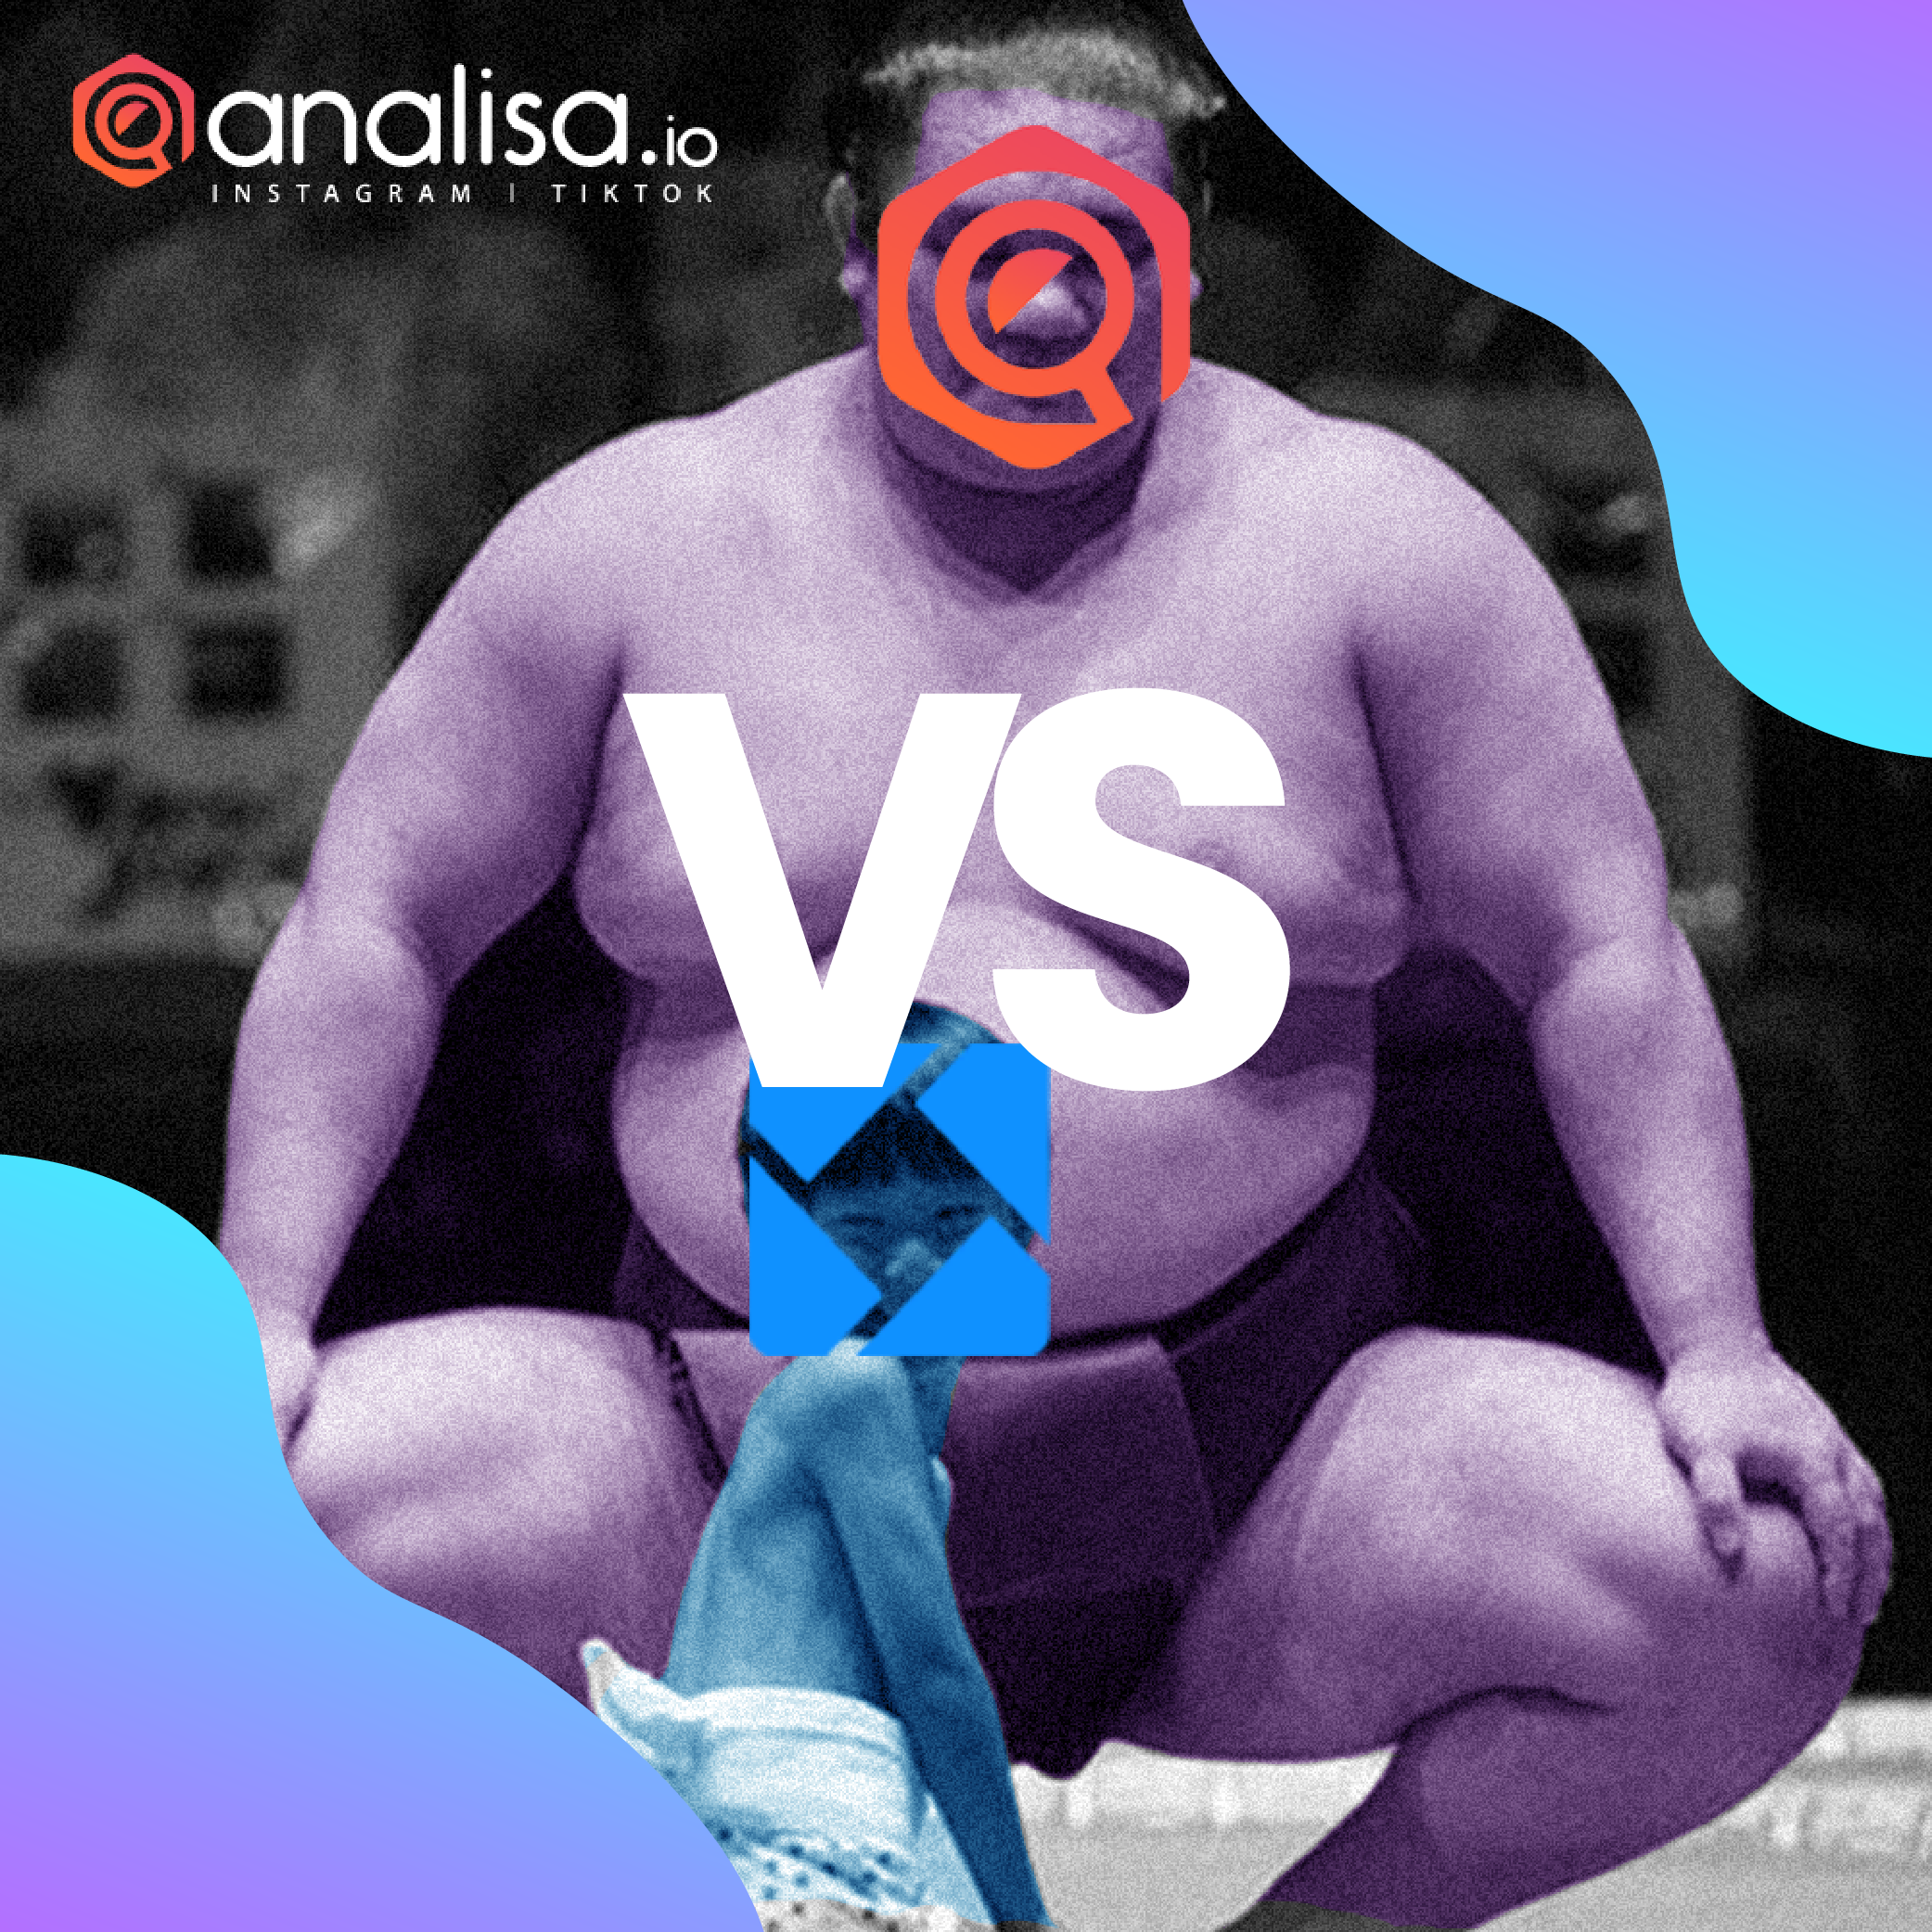 Analisa.io vs Iconosquare: the Battle of Instagram Analytics Tools